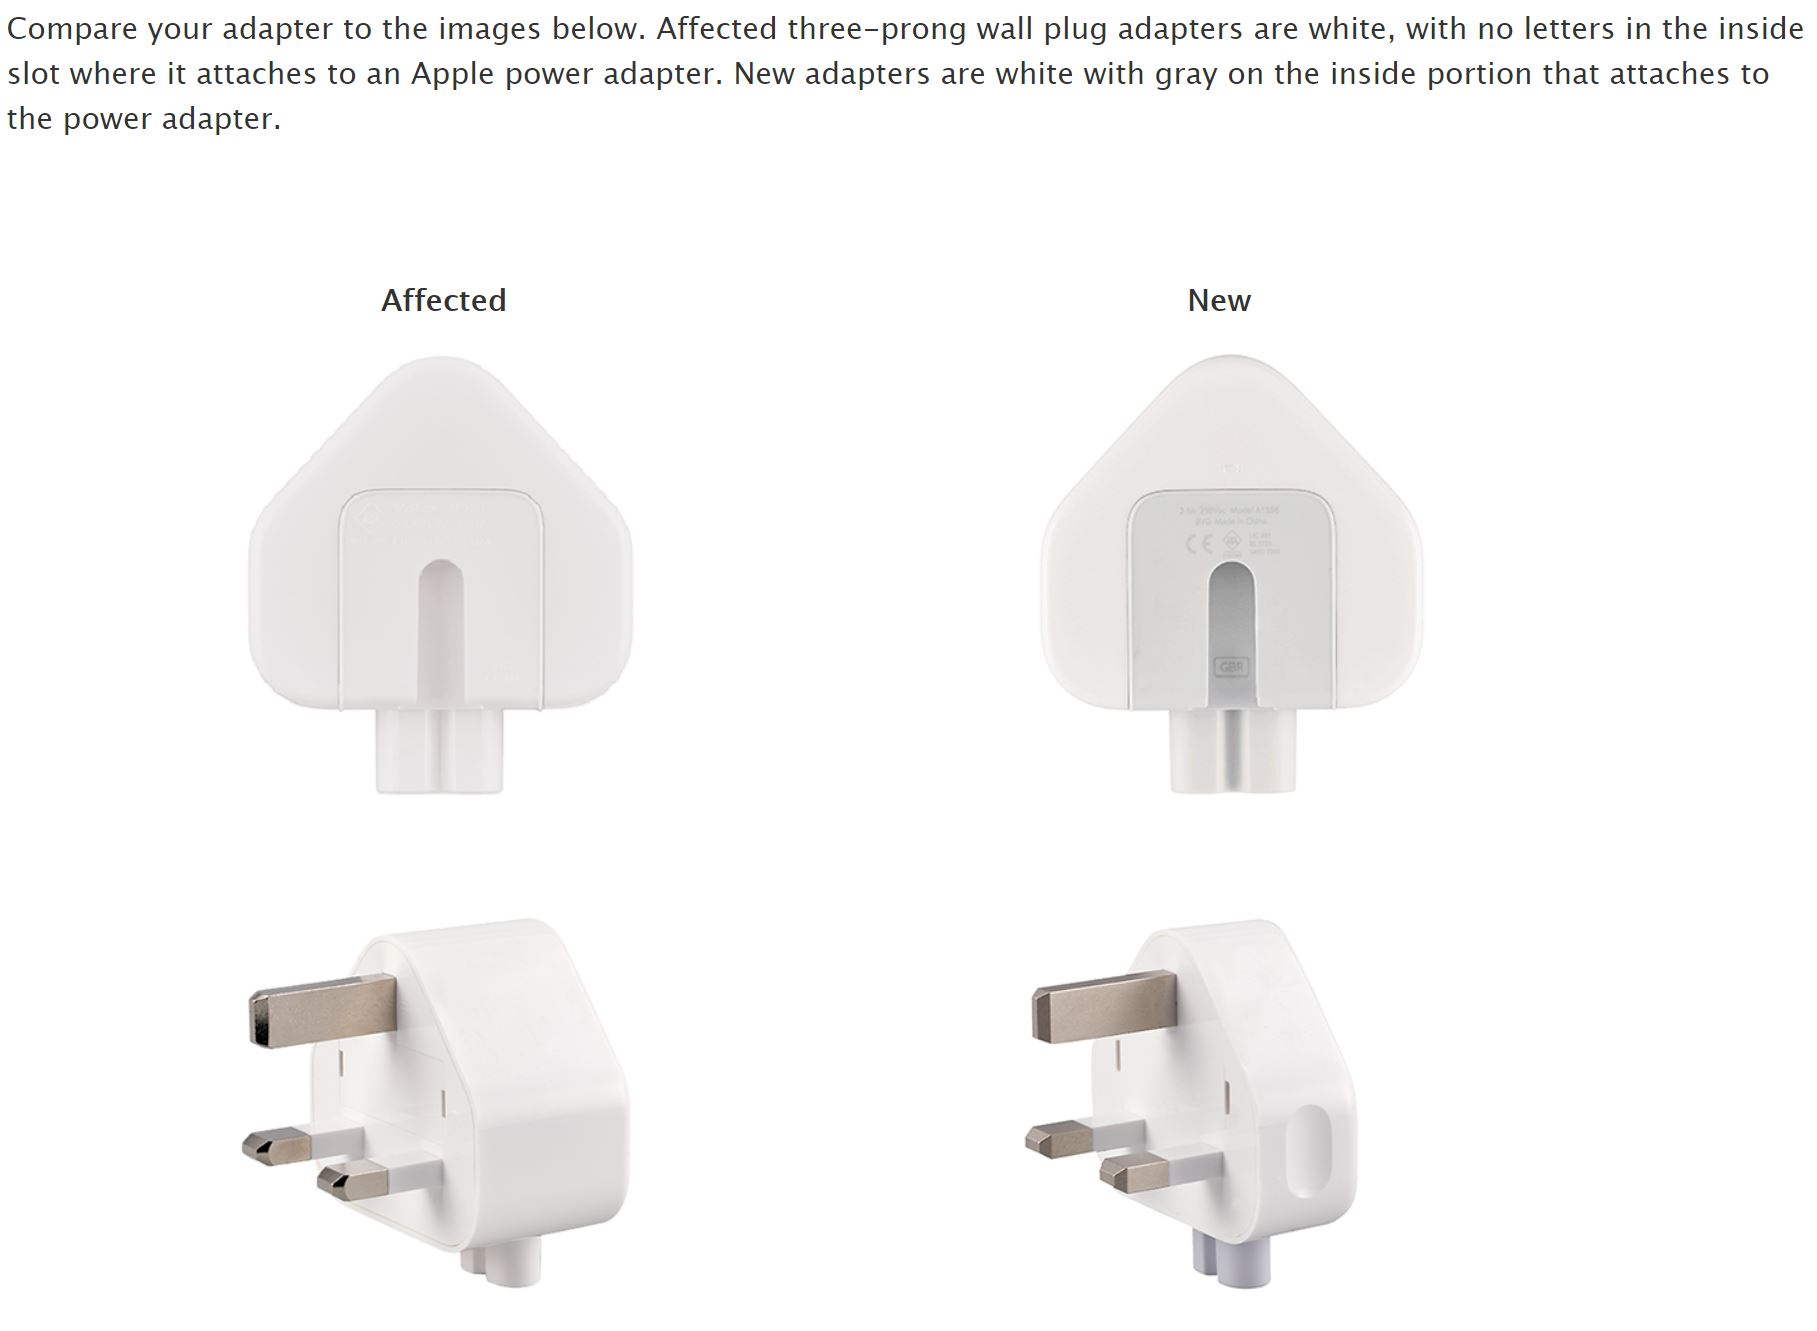 Risky fruit: Apple recalls specific wall plugs over electric shock risk